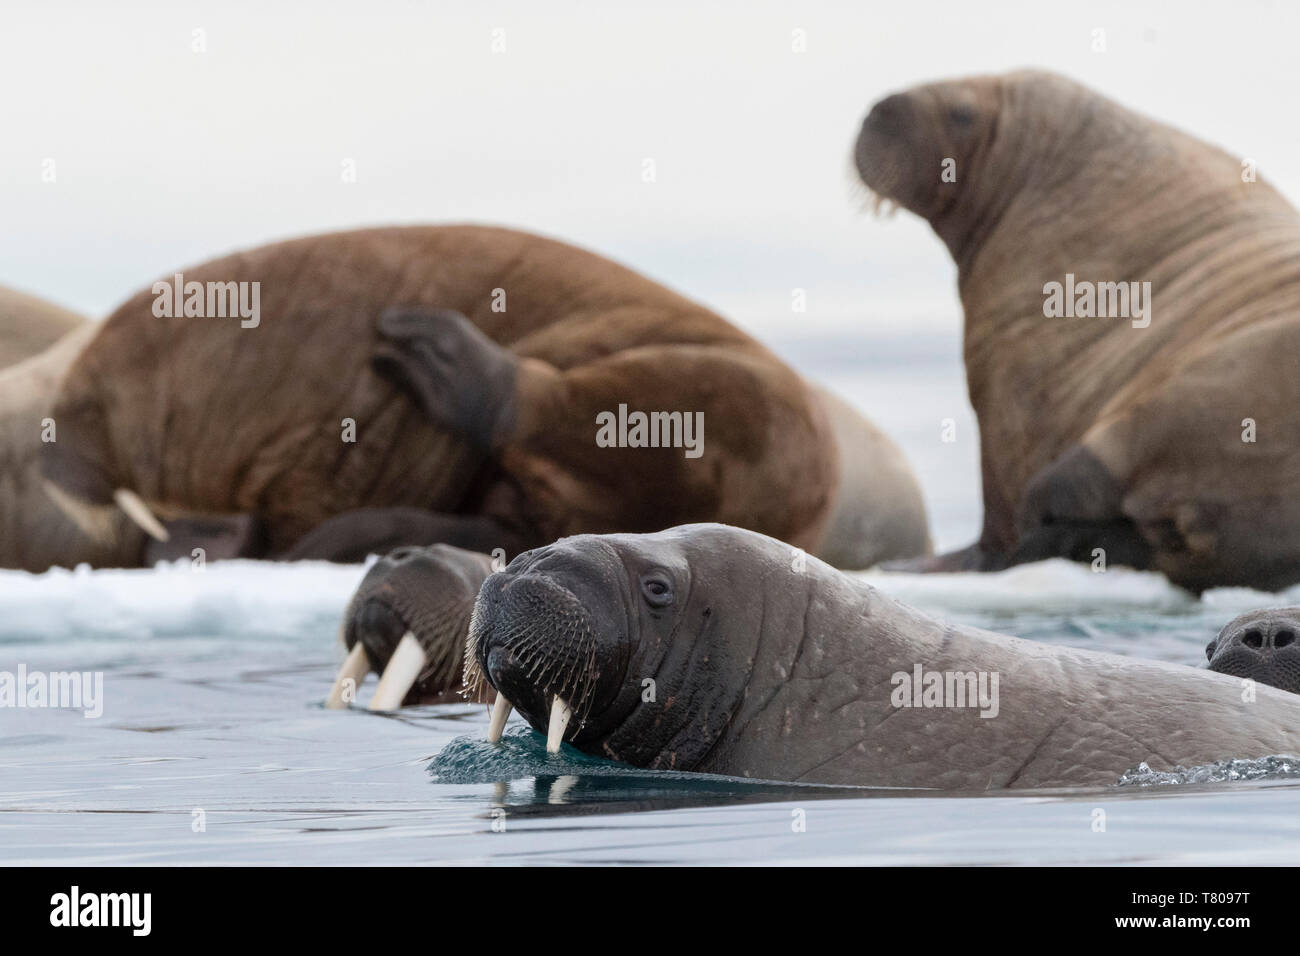 Atlantic walruses (Odobenus rosmarus), Vibebukta, Austfonna, Nordaustlandet, Svalbard Islands, Arctic, Norway, Europe Stock Photo